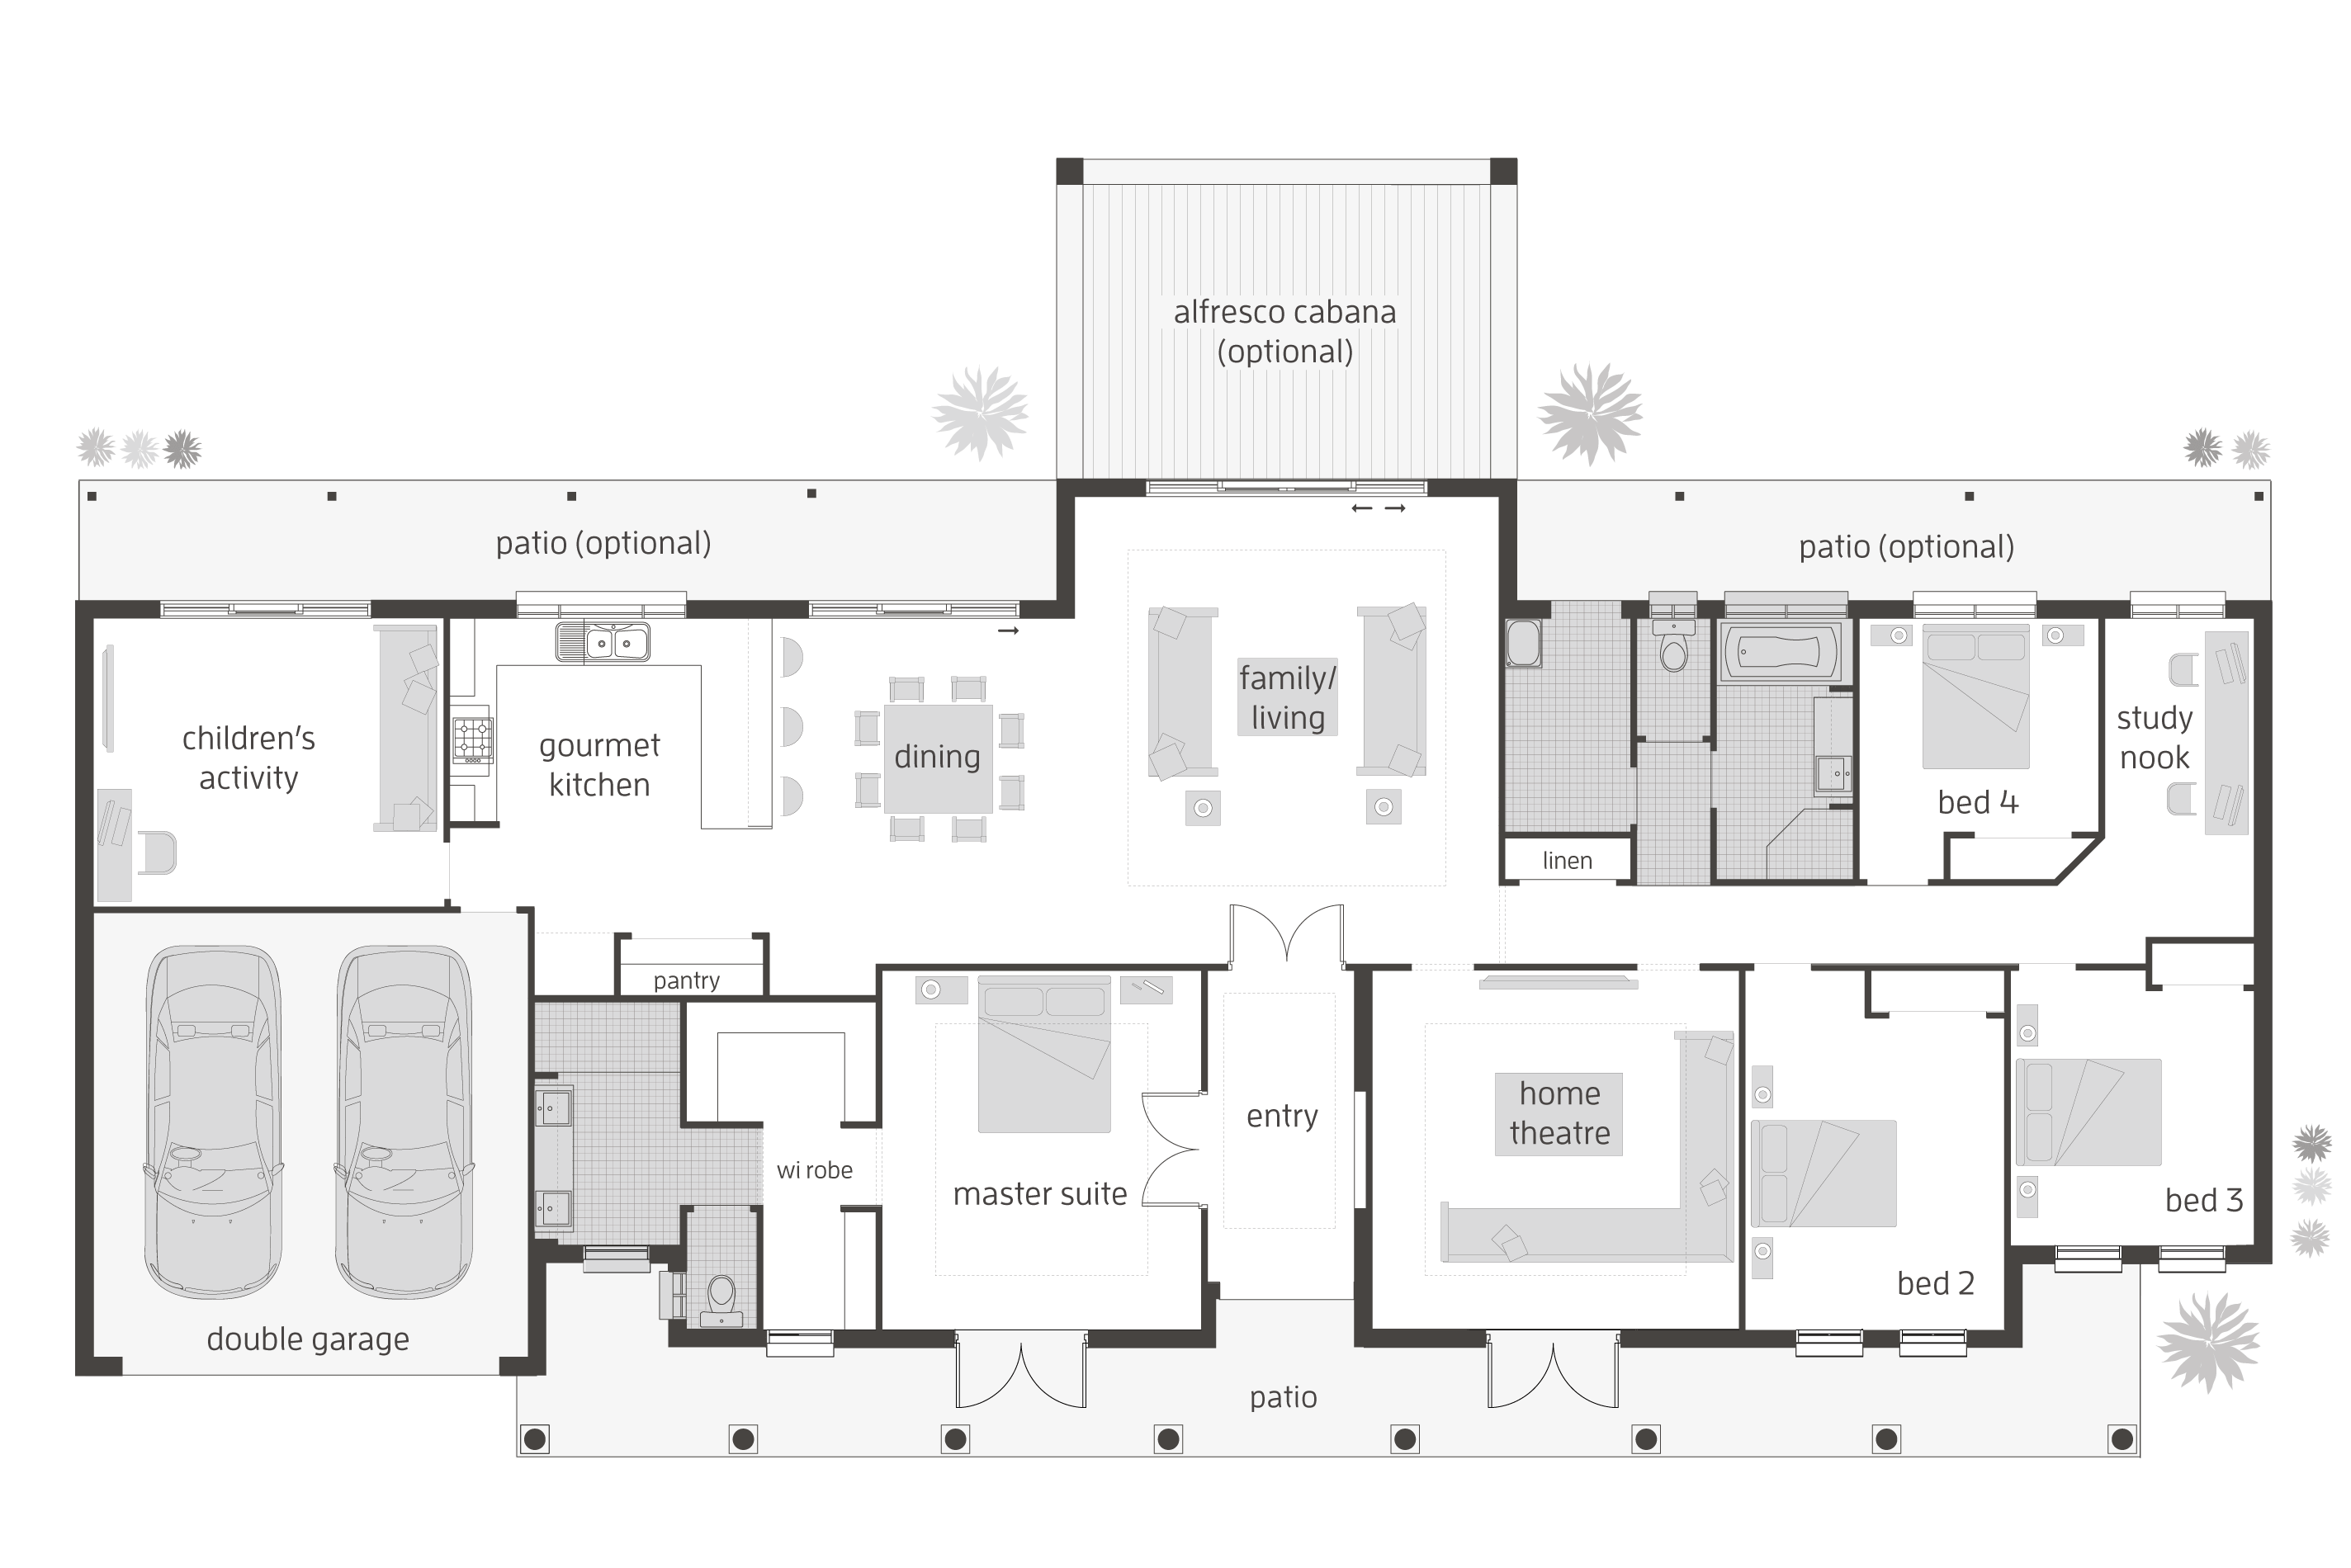 M2 To Sq Feet Floor Plan Friday 4 Bedroom Children S Activity Room